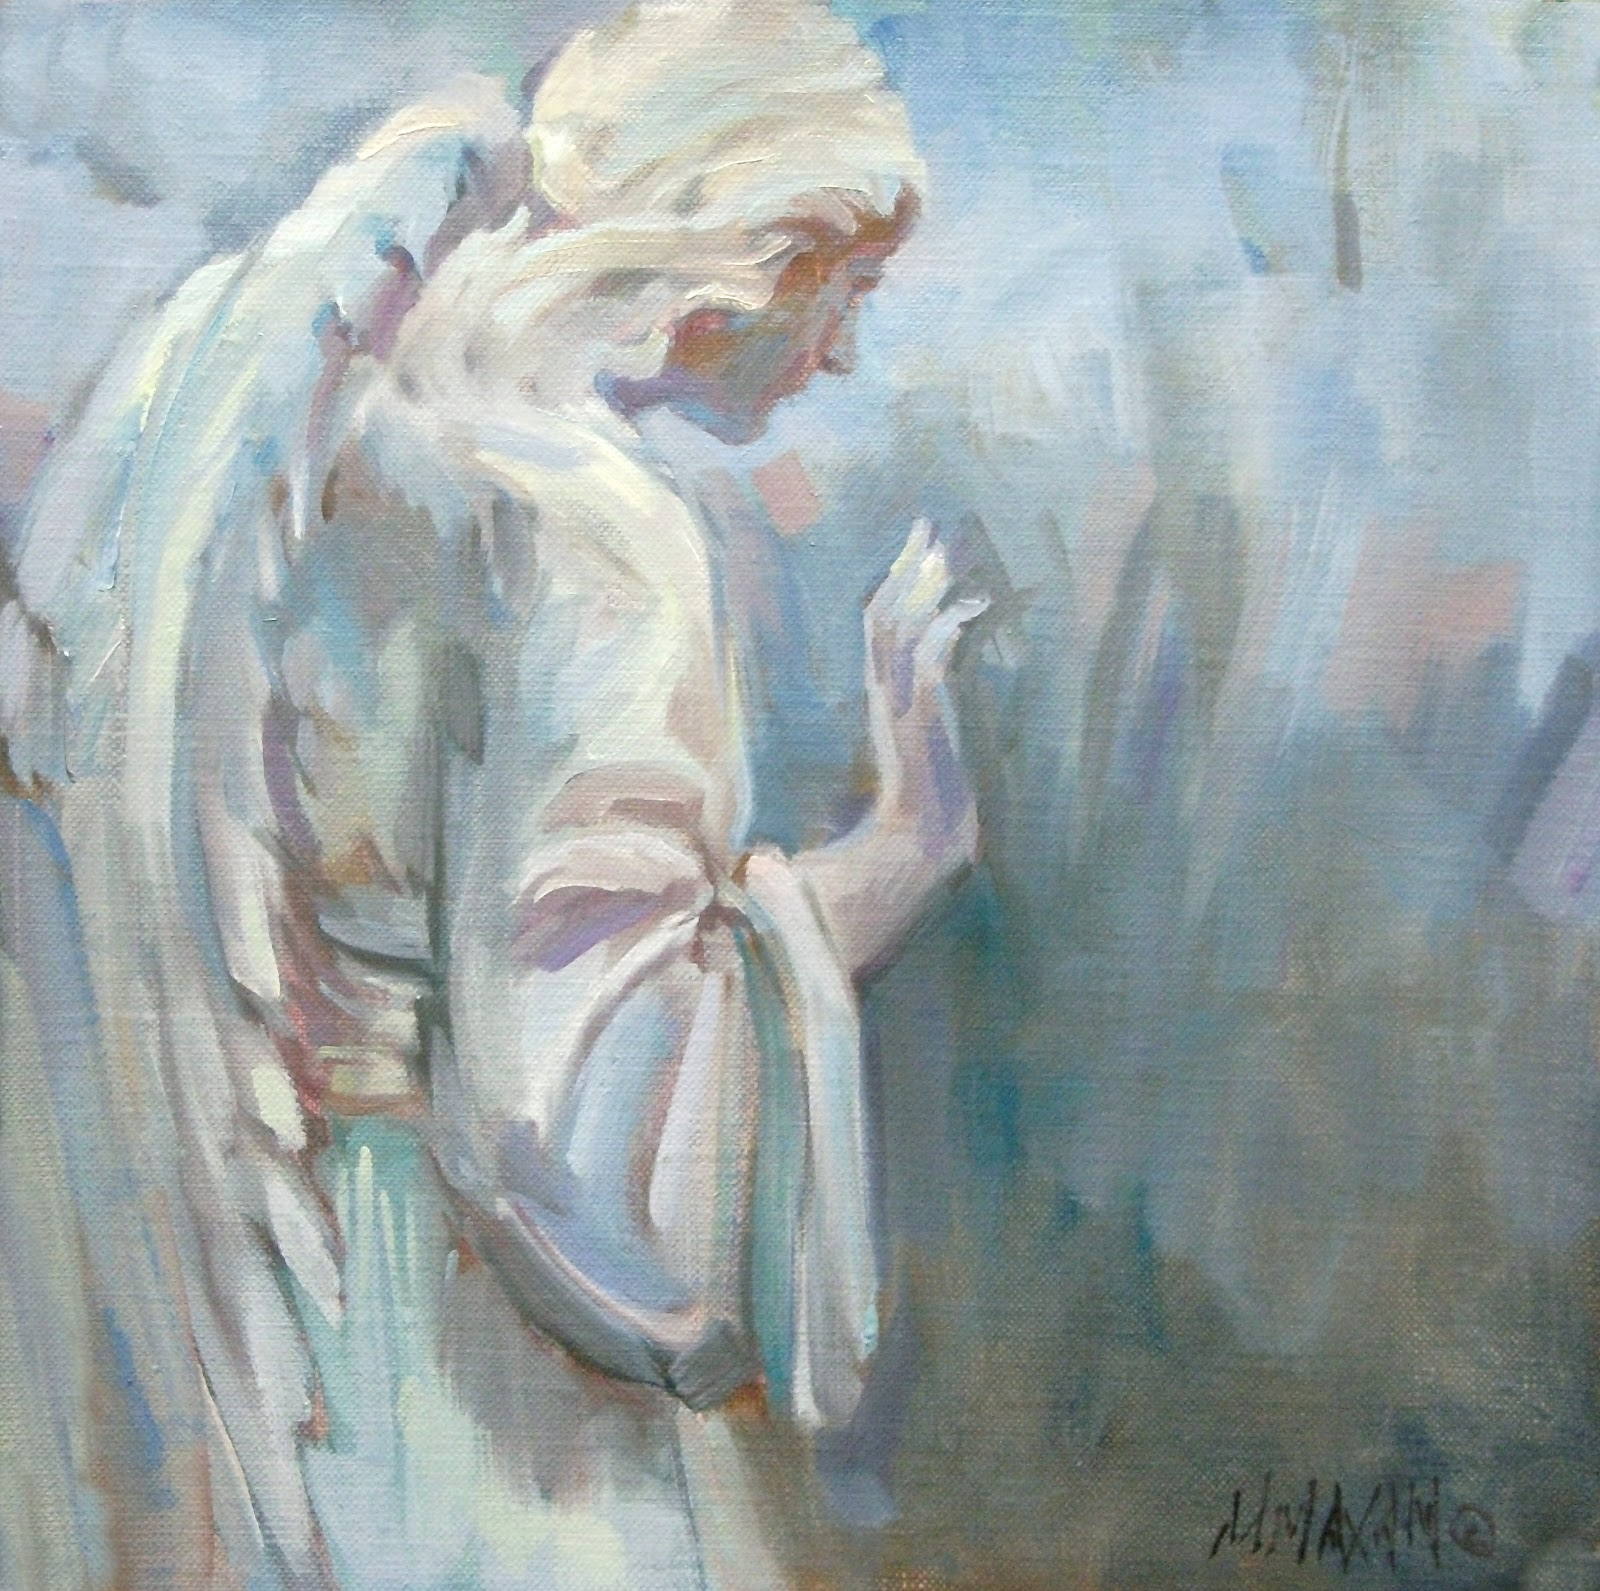 Abstract Angel Painting Images